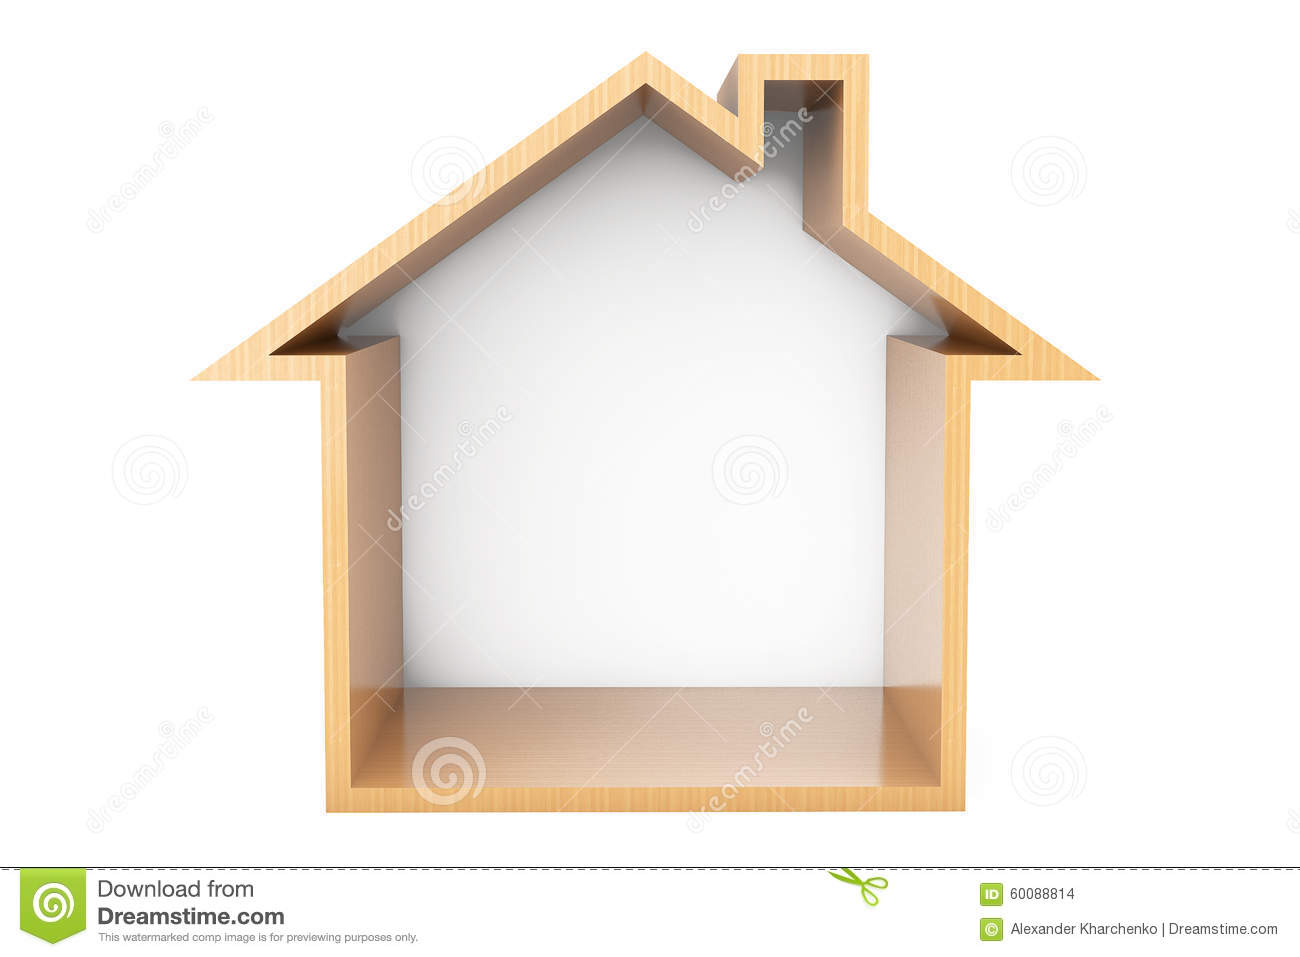 House outline picture - Picture Of A House Outline